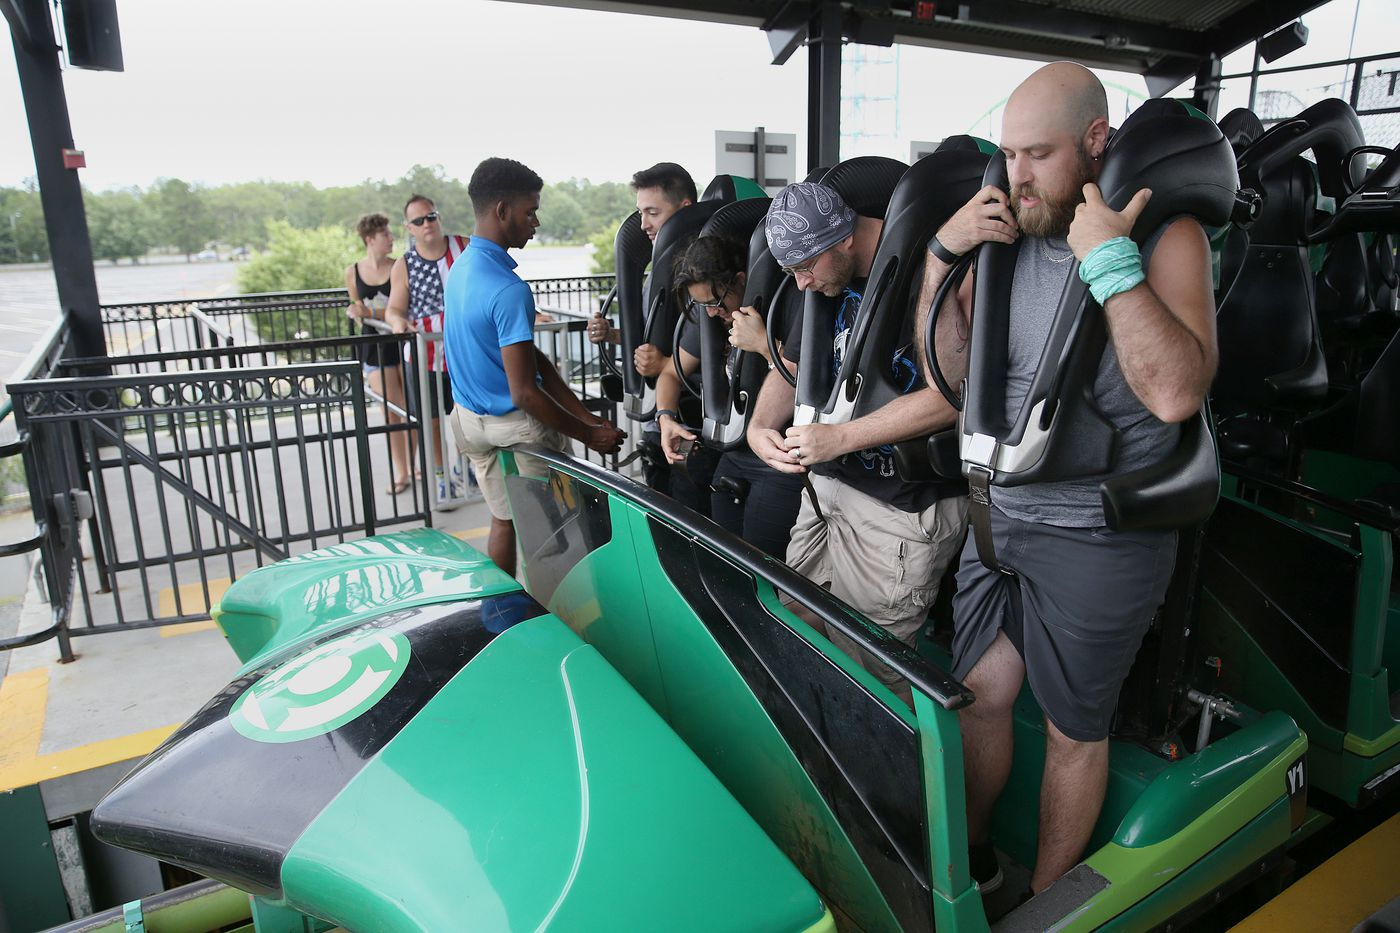 James Hanley, of Nyack, N.Y. (right), and his friend Michael Wray, of Yonkers, N.Y. (second from right), prepare to ride the Green Lantern roller coaster at Great Adventure.